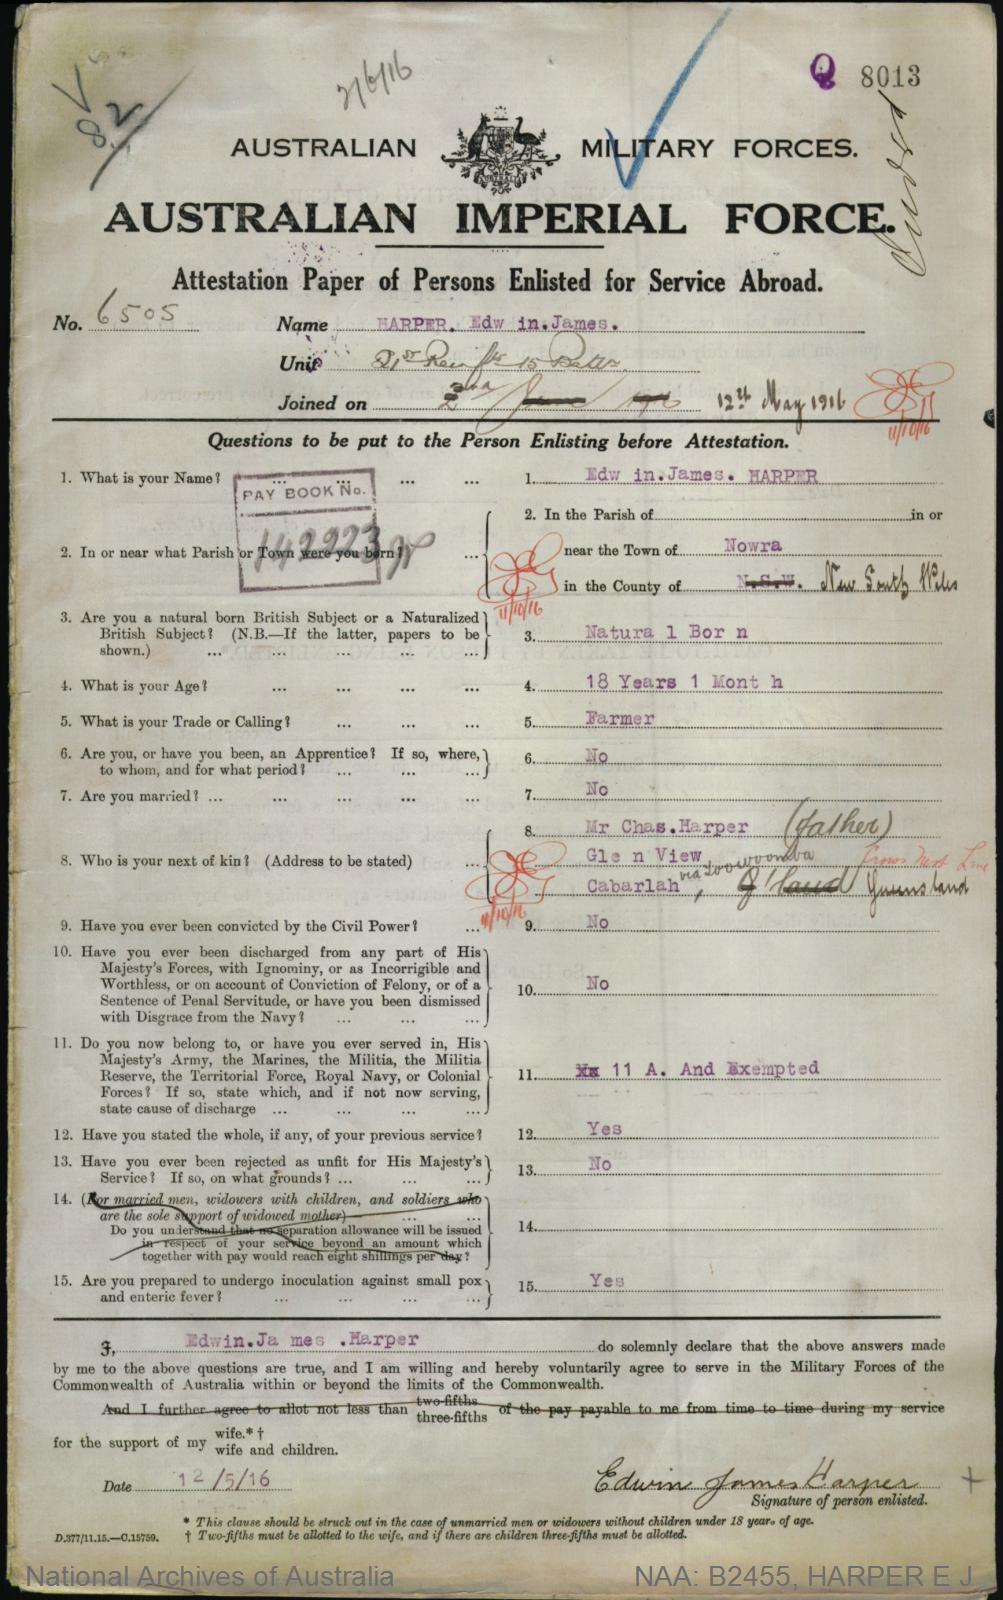 HARPER Edwin James : Service Number - 6505 : Place of Birth - Nowra NSW : Place of Enlistment - Toowoomba QLD : Next of Kin - (Father) HARPER Charles